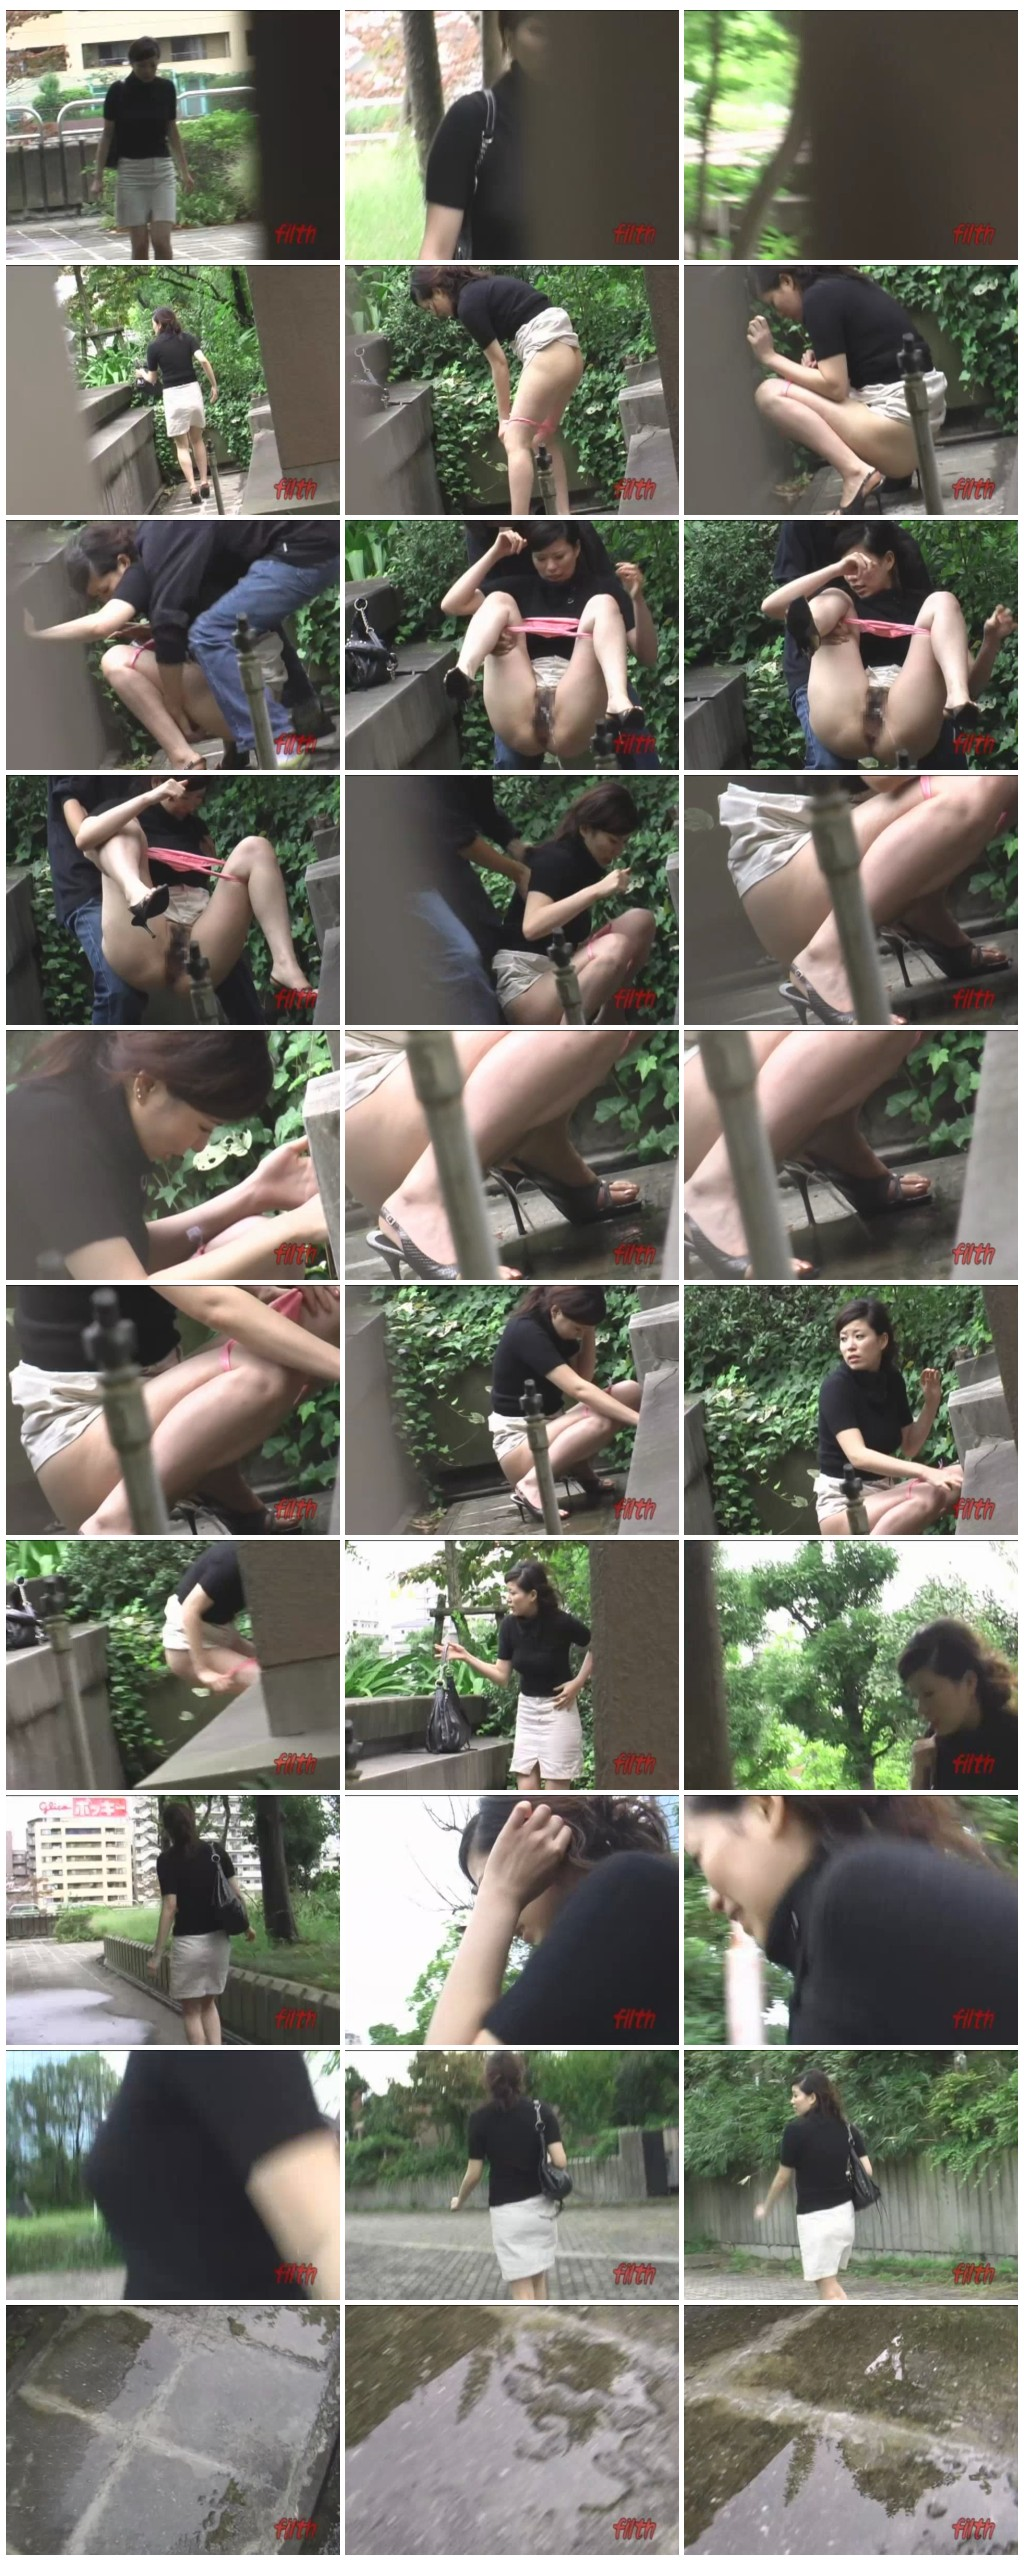 Jade Filth F15 03 Assaulted After Caught Pissing Or Pooping 15 Scat solo shit defecation pissing farting thumb - Jade Filth - F15-03 - Assaulted After Caught Pissing Or Pooping-15 [Scat solo, shit, defecation, pissing, farting]